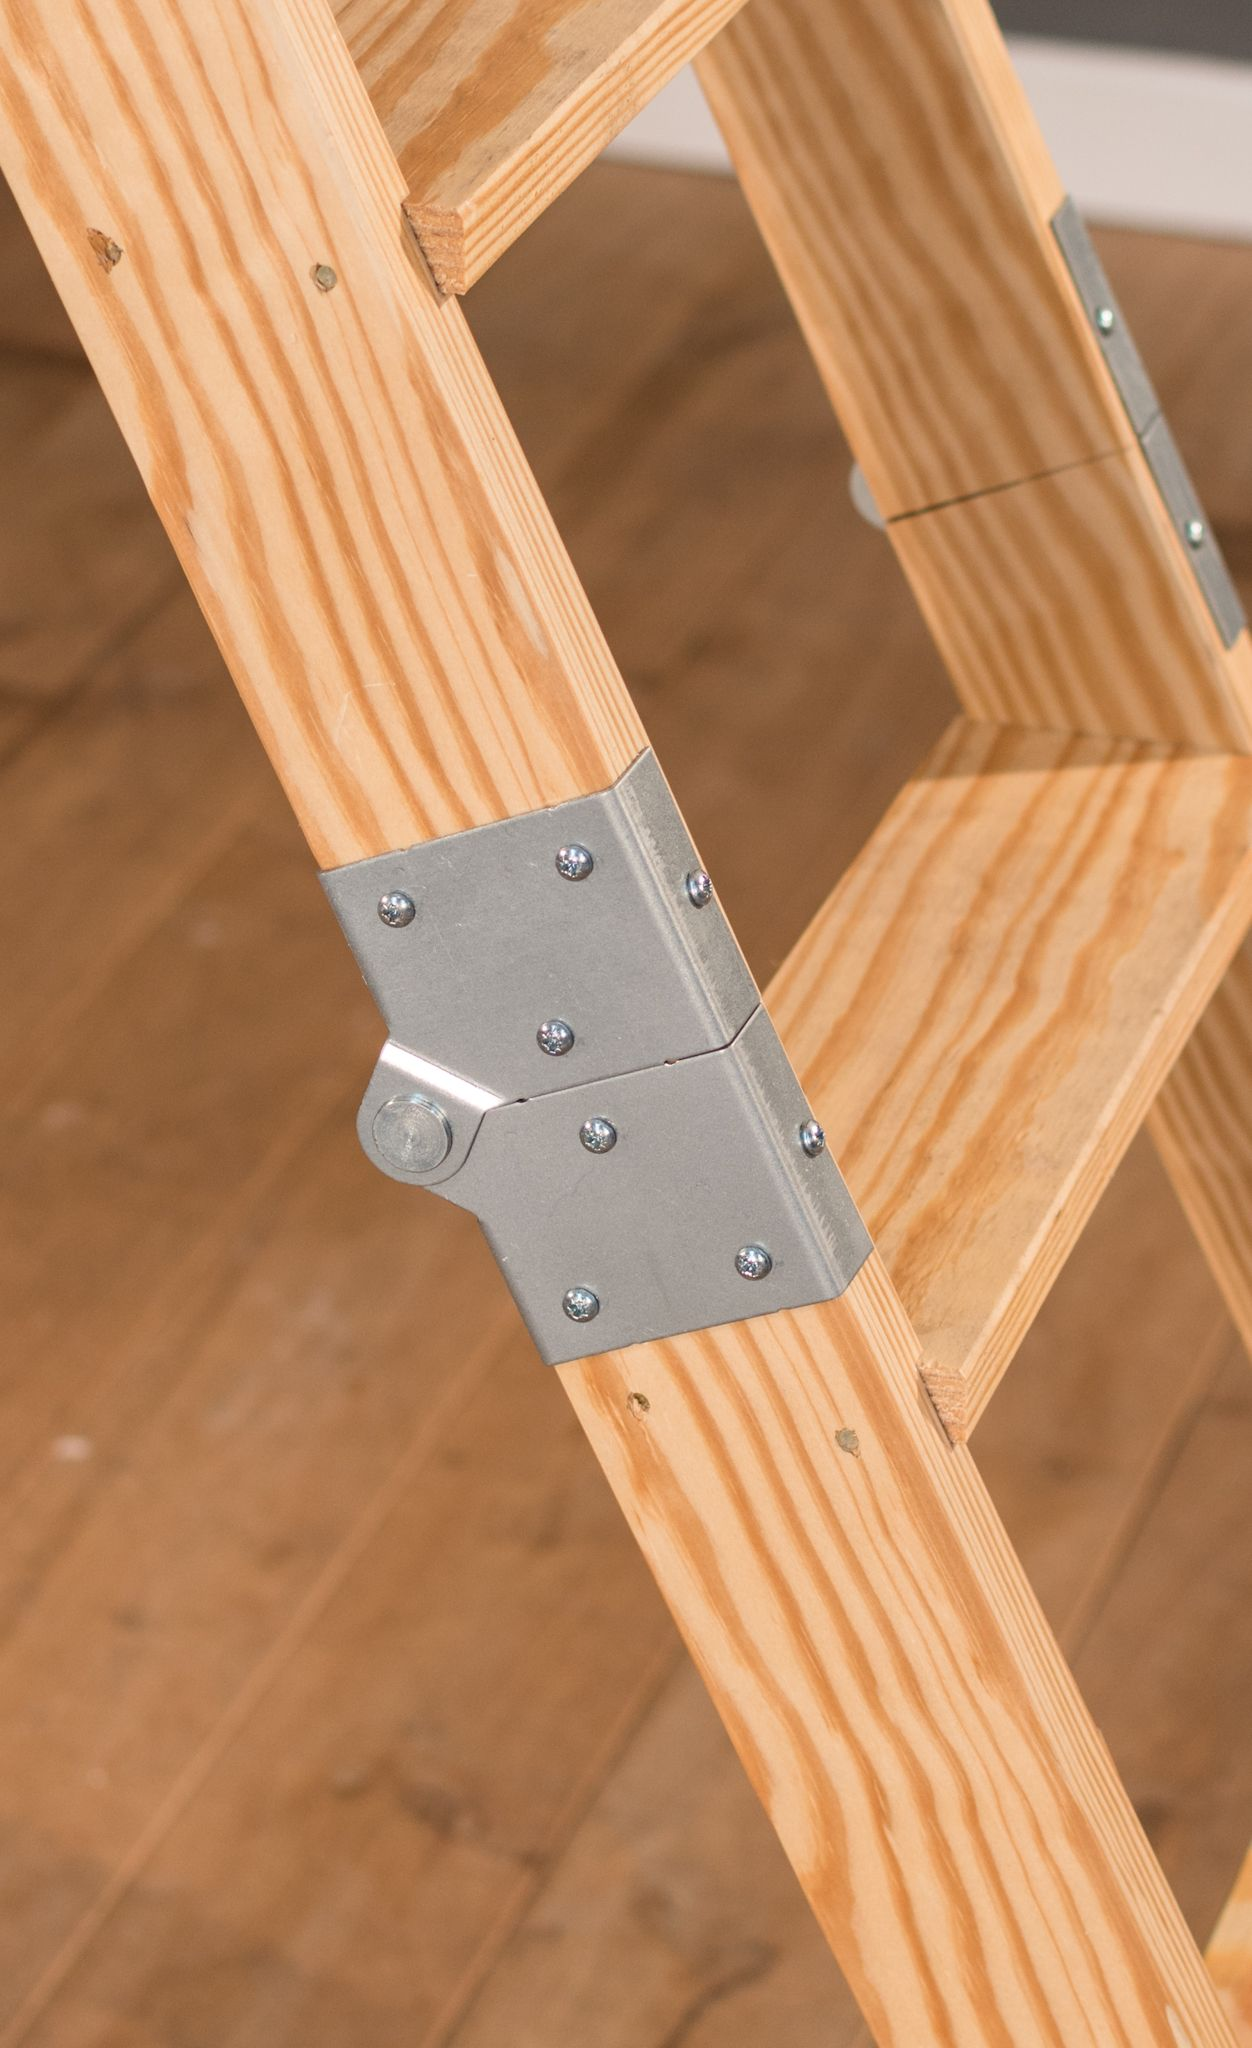 The Stira Wraparound Hinge Clamps To 3 Sides Of The Ladder The Fold Between The Bottom And Middle Sections Of A Loft L Folding Attic Stairs Loft Ladder Ladder